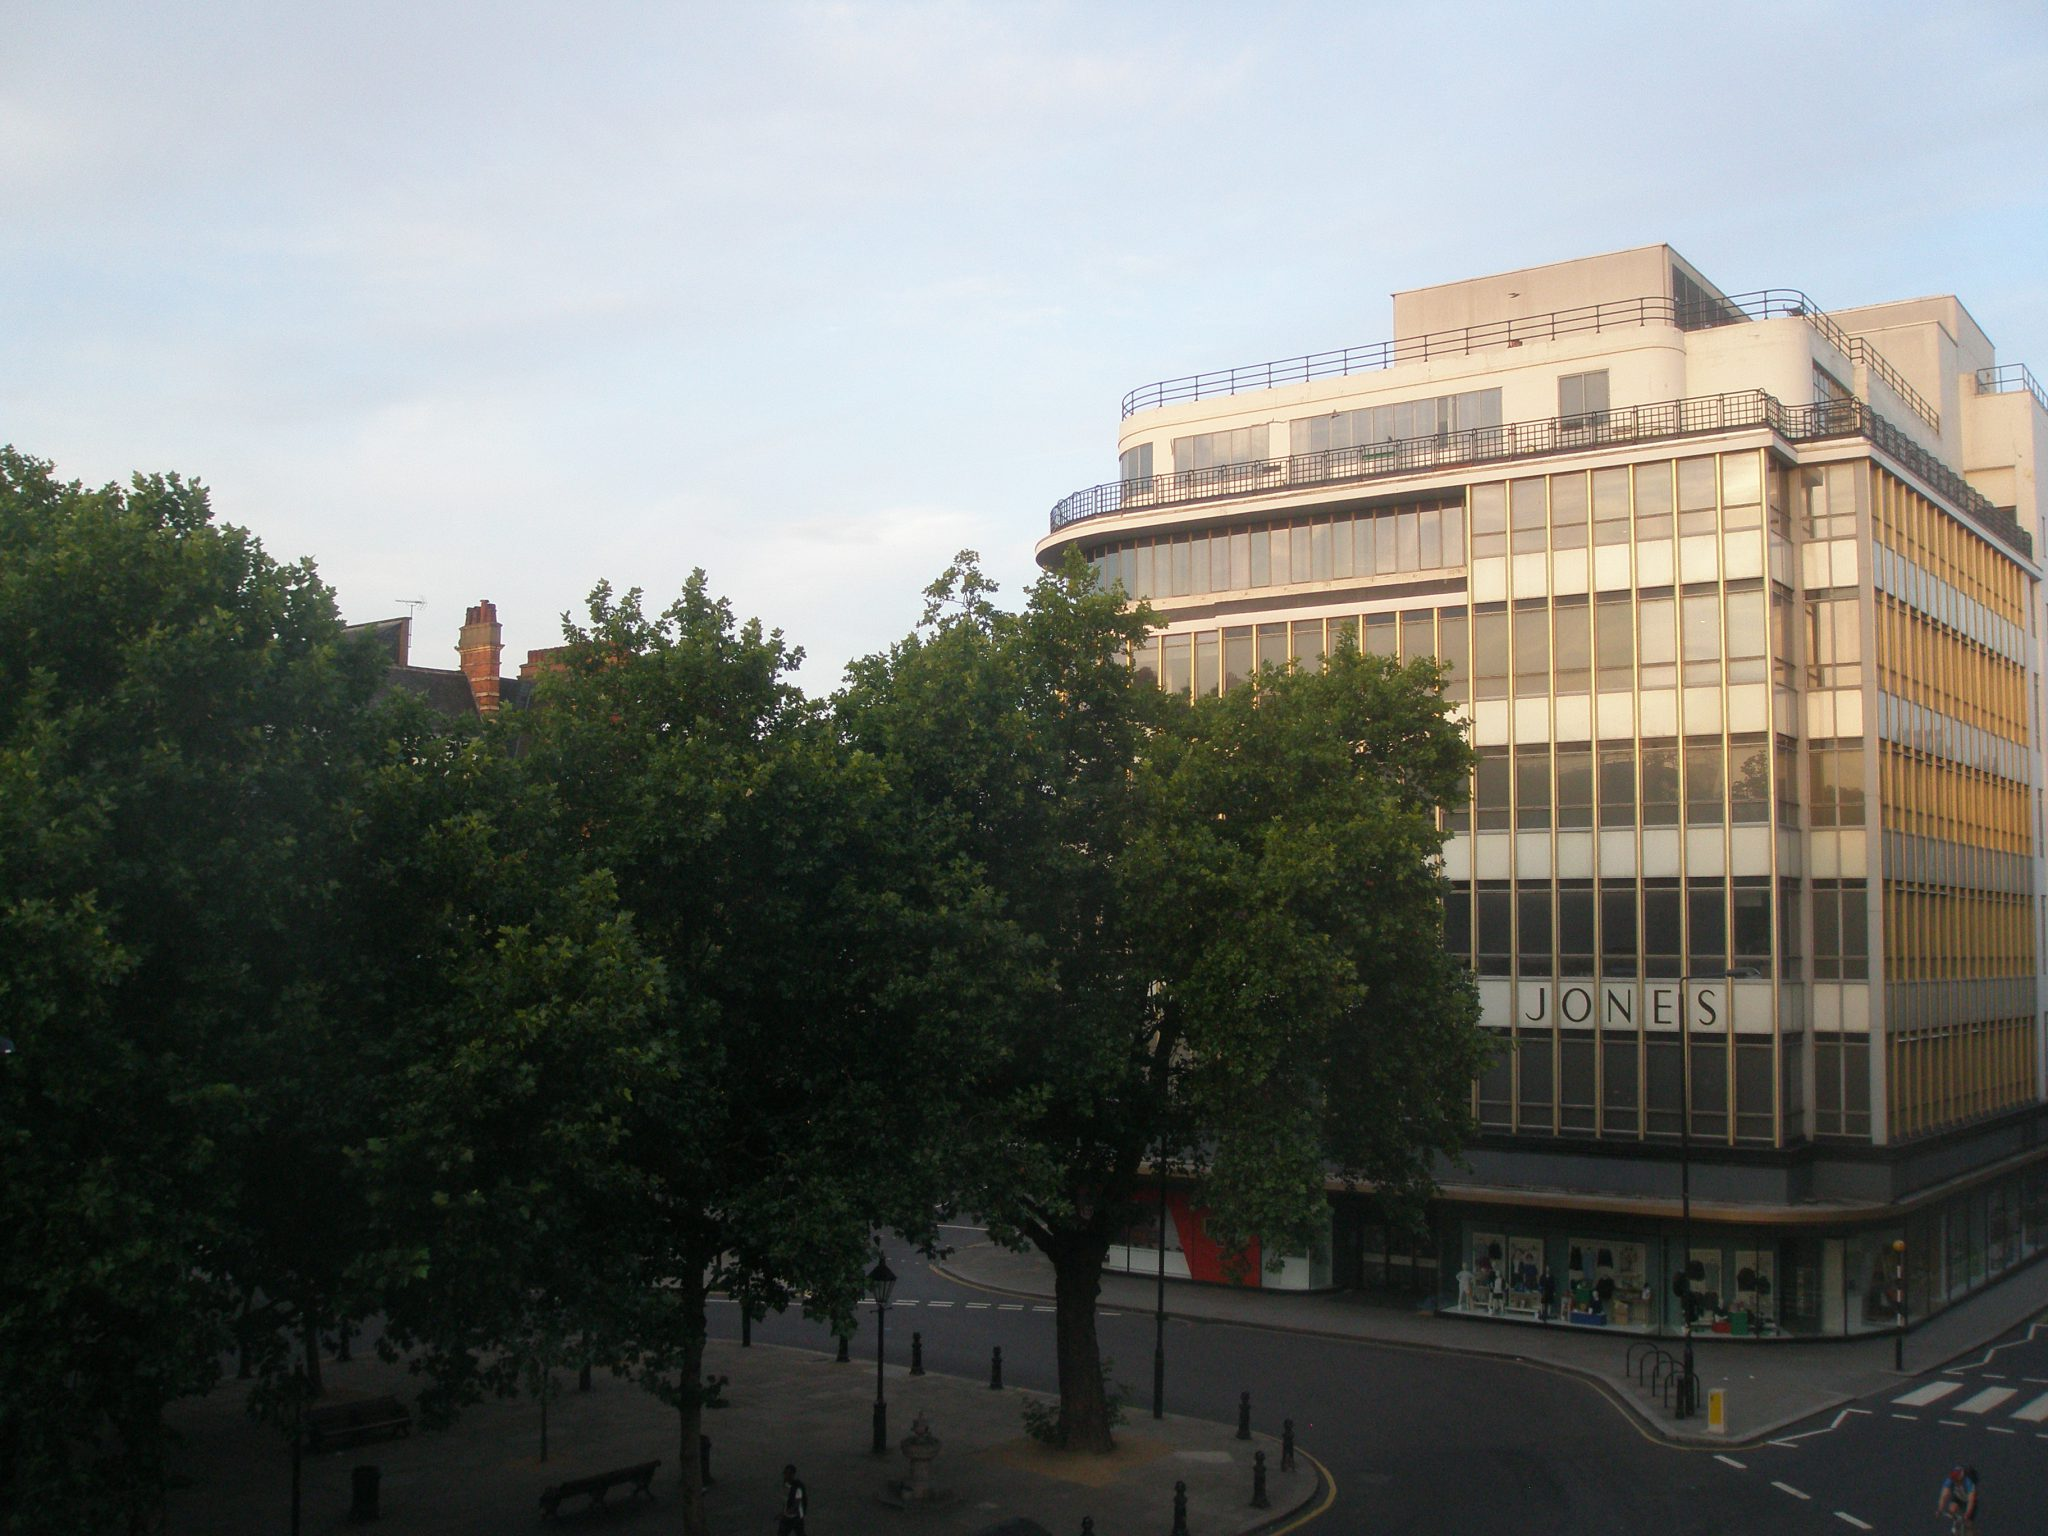 An early-morning view of the Peter Jones Department Store, from my windows at the Sloane Square Hotel. I took this photo on August 21, 2013.